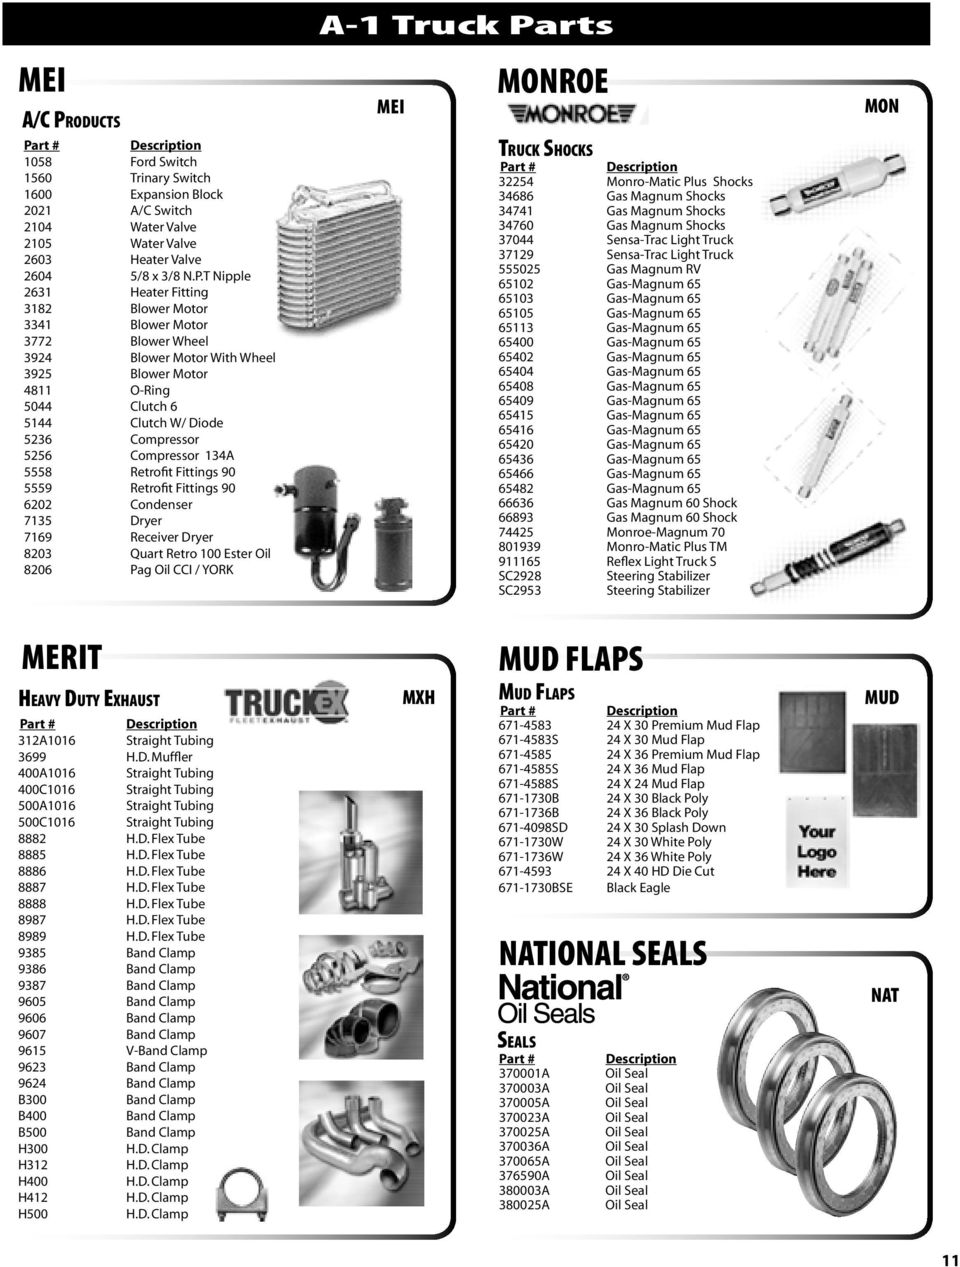 Grote 4811 77 Wiring Diagram Turn Signal Wire Freightliner Switch 48272 A 1 Truck Parts Speciality Book Index Pdf On Flashers And Switches